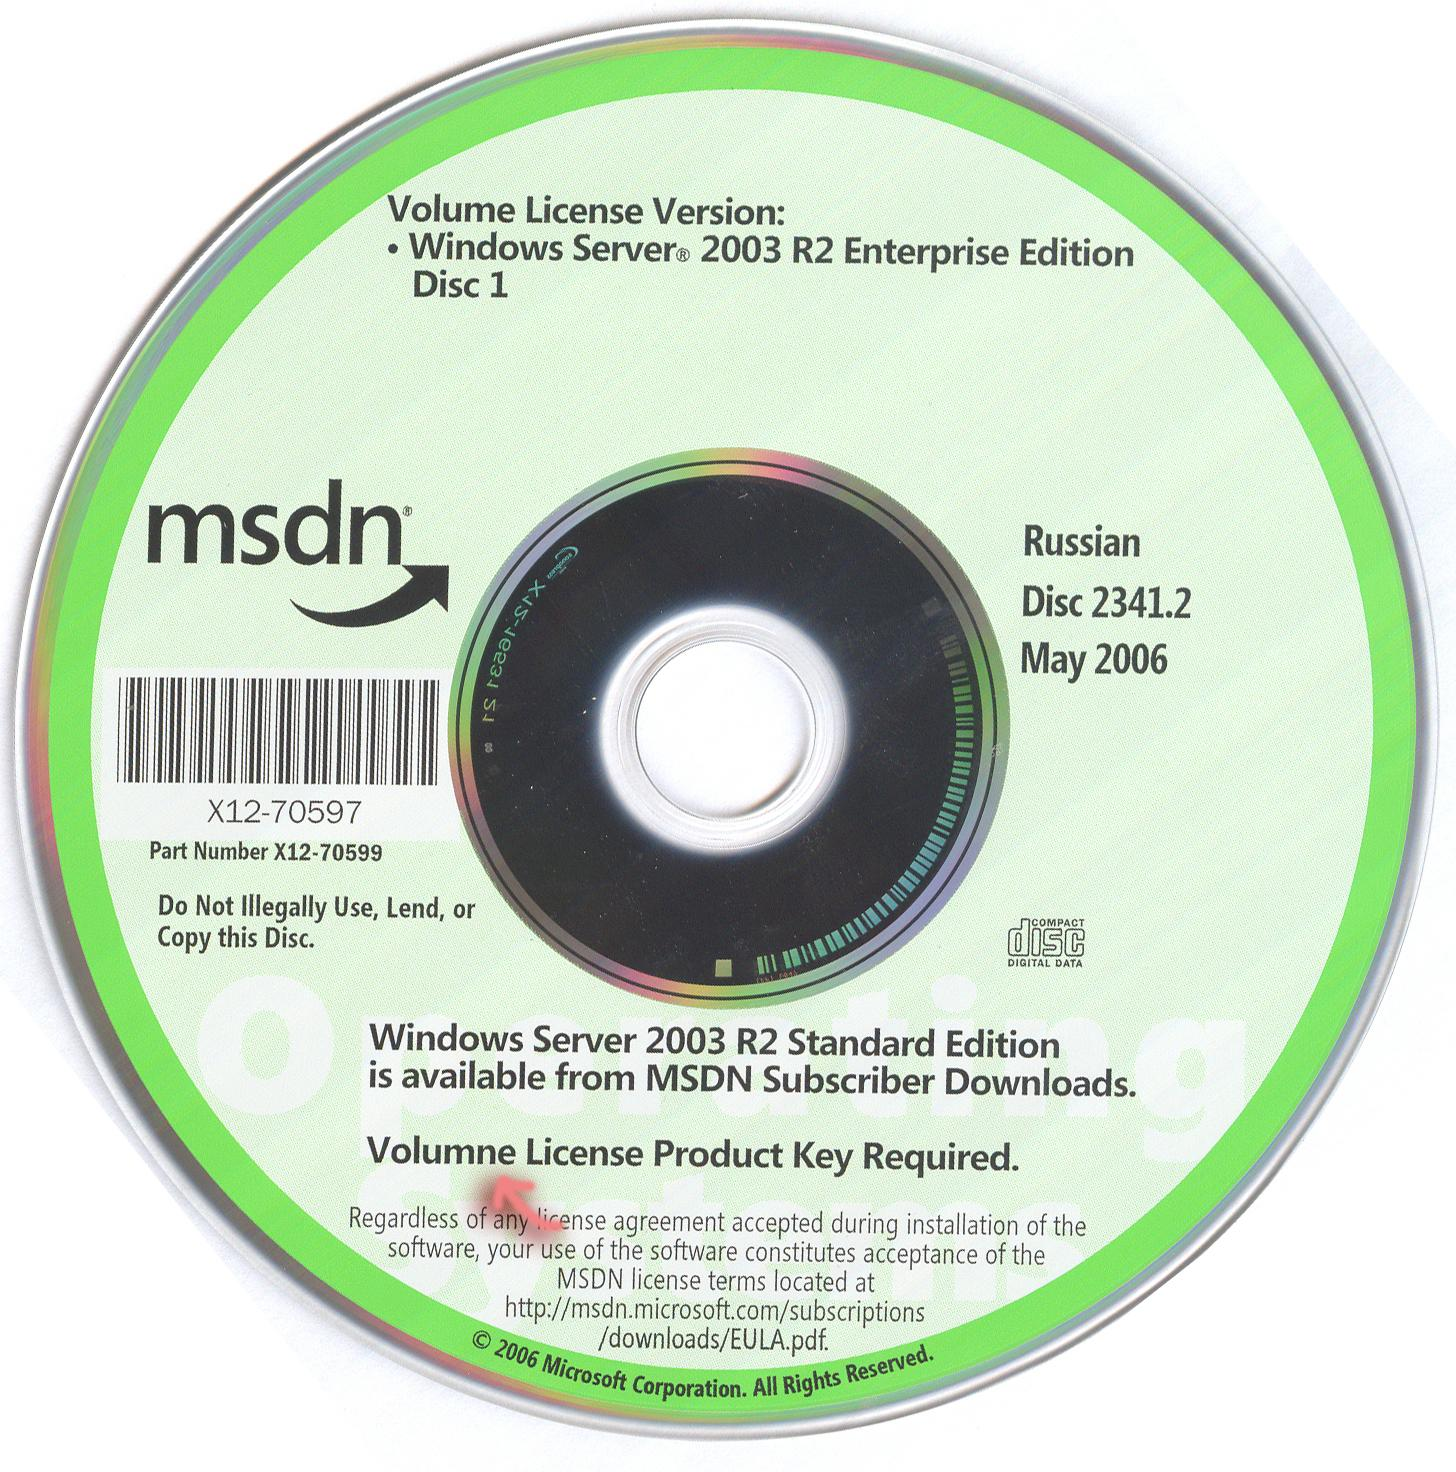 View topic - [OFFER] MSDN Disk Images - BetaArchive